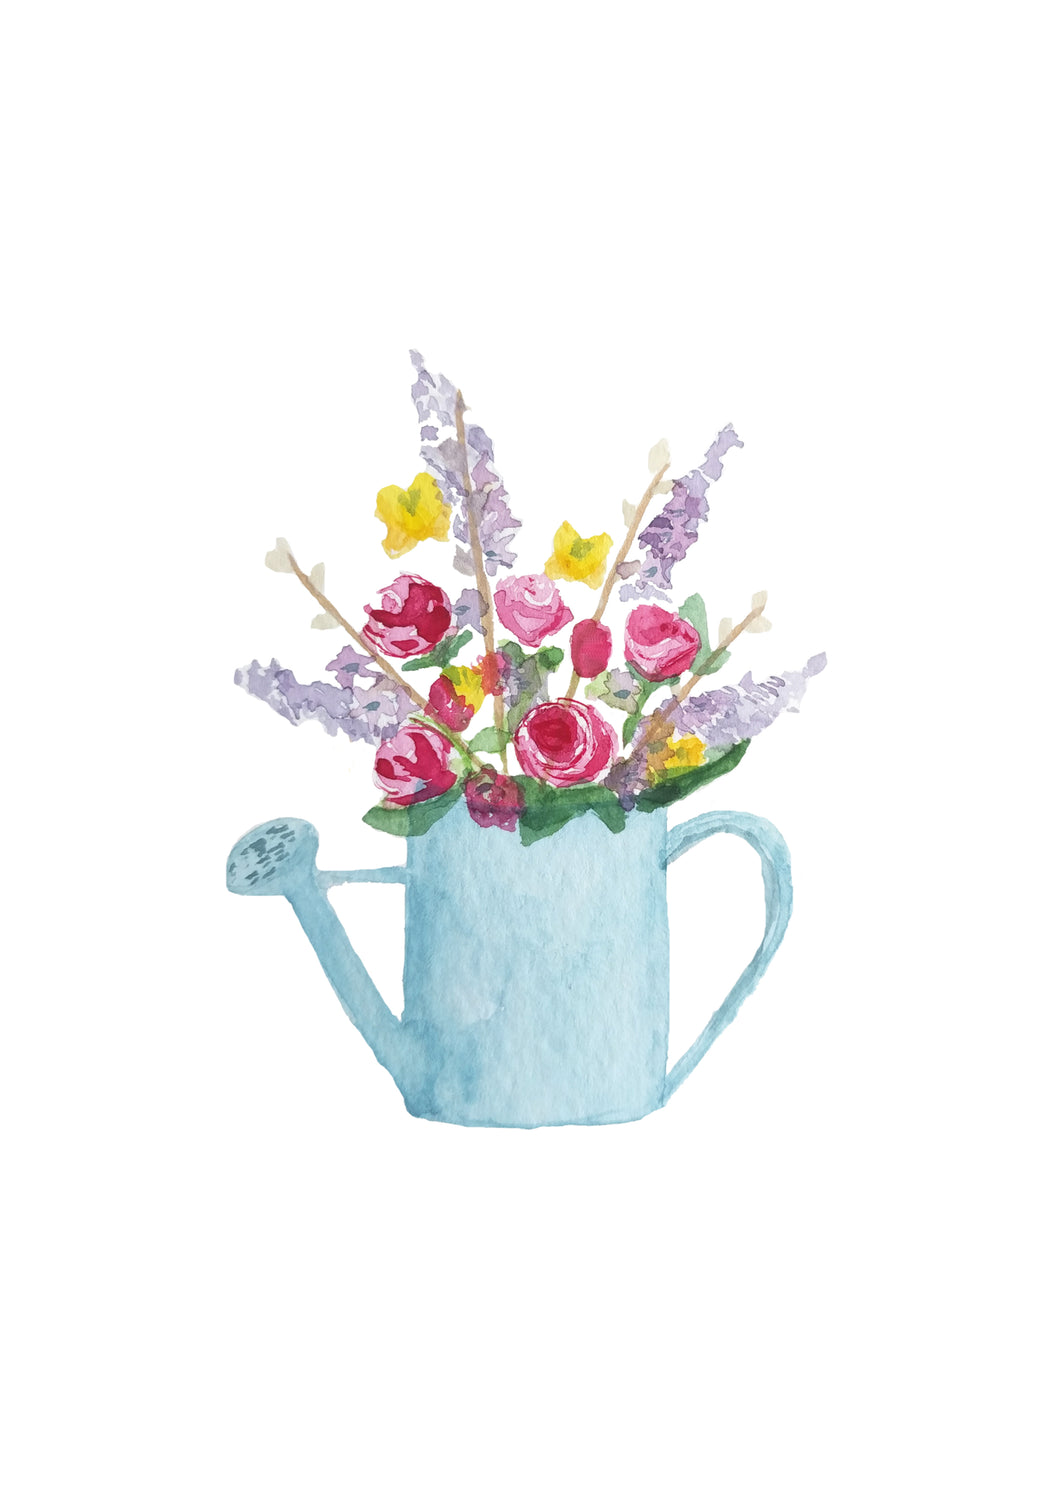 Watering Can Flowers A4 Giclee Print